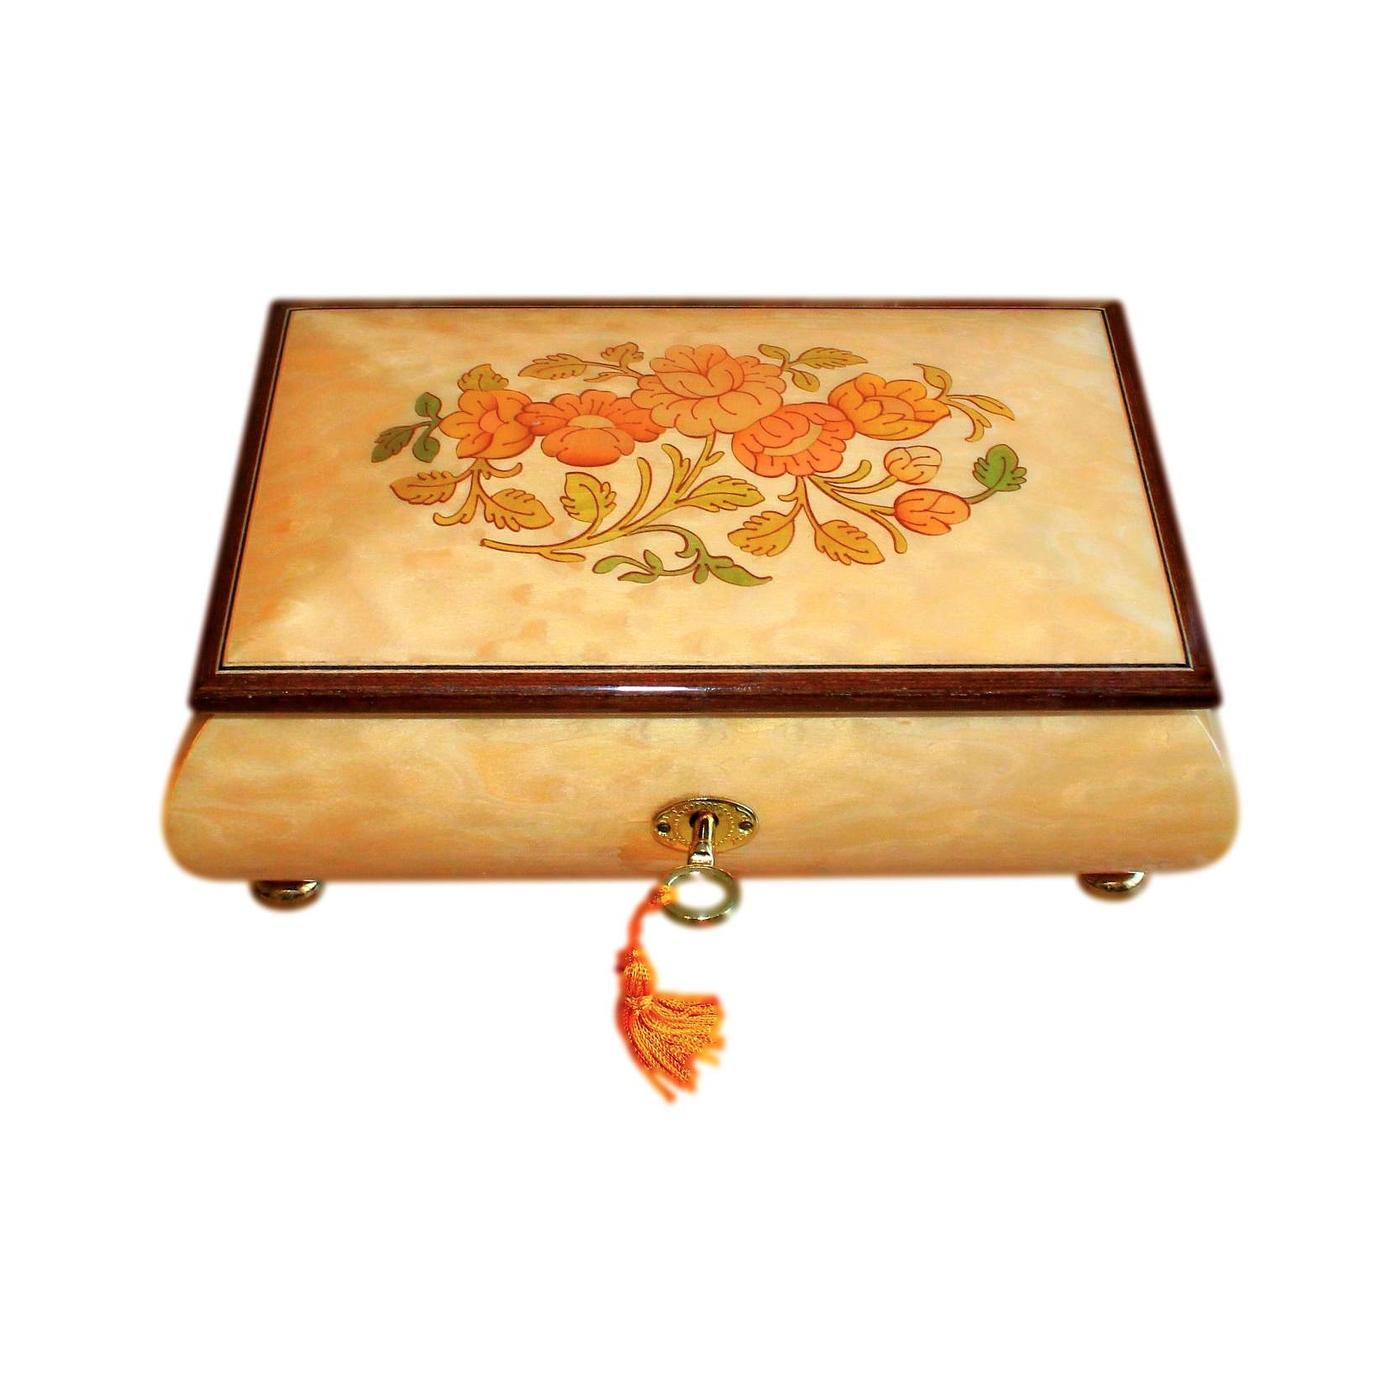 Velvet Lined Italian Inlaid Vintage Jewellery Box